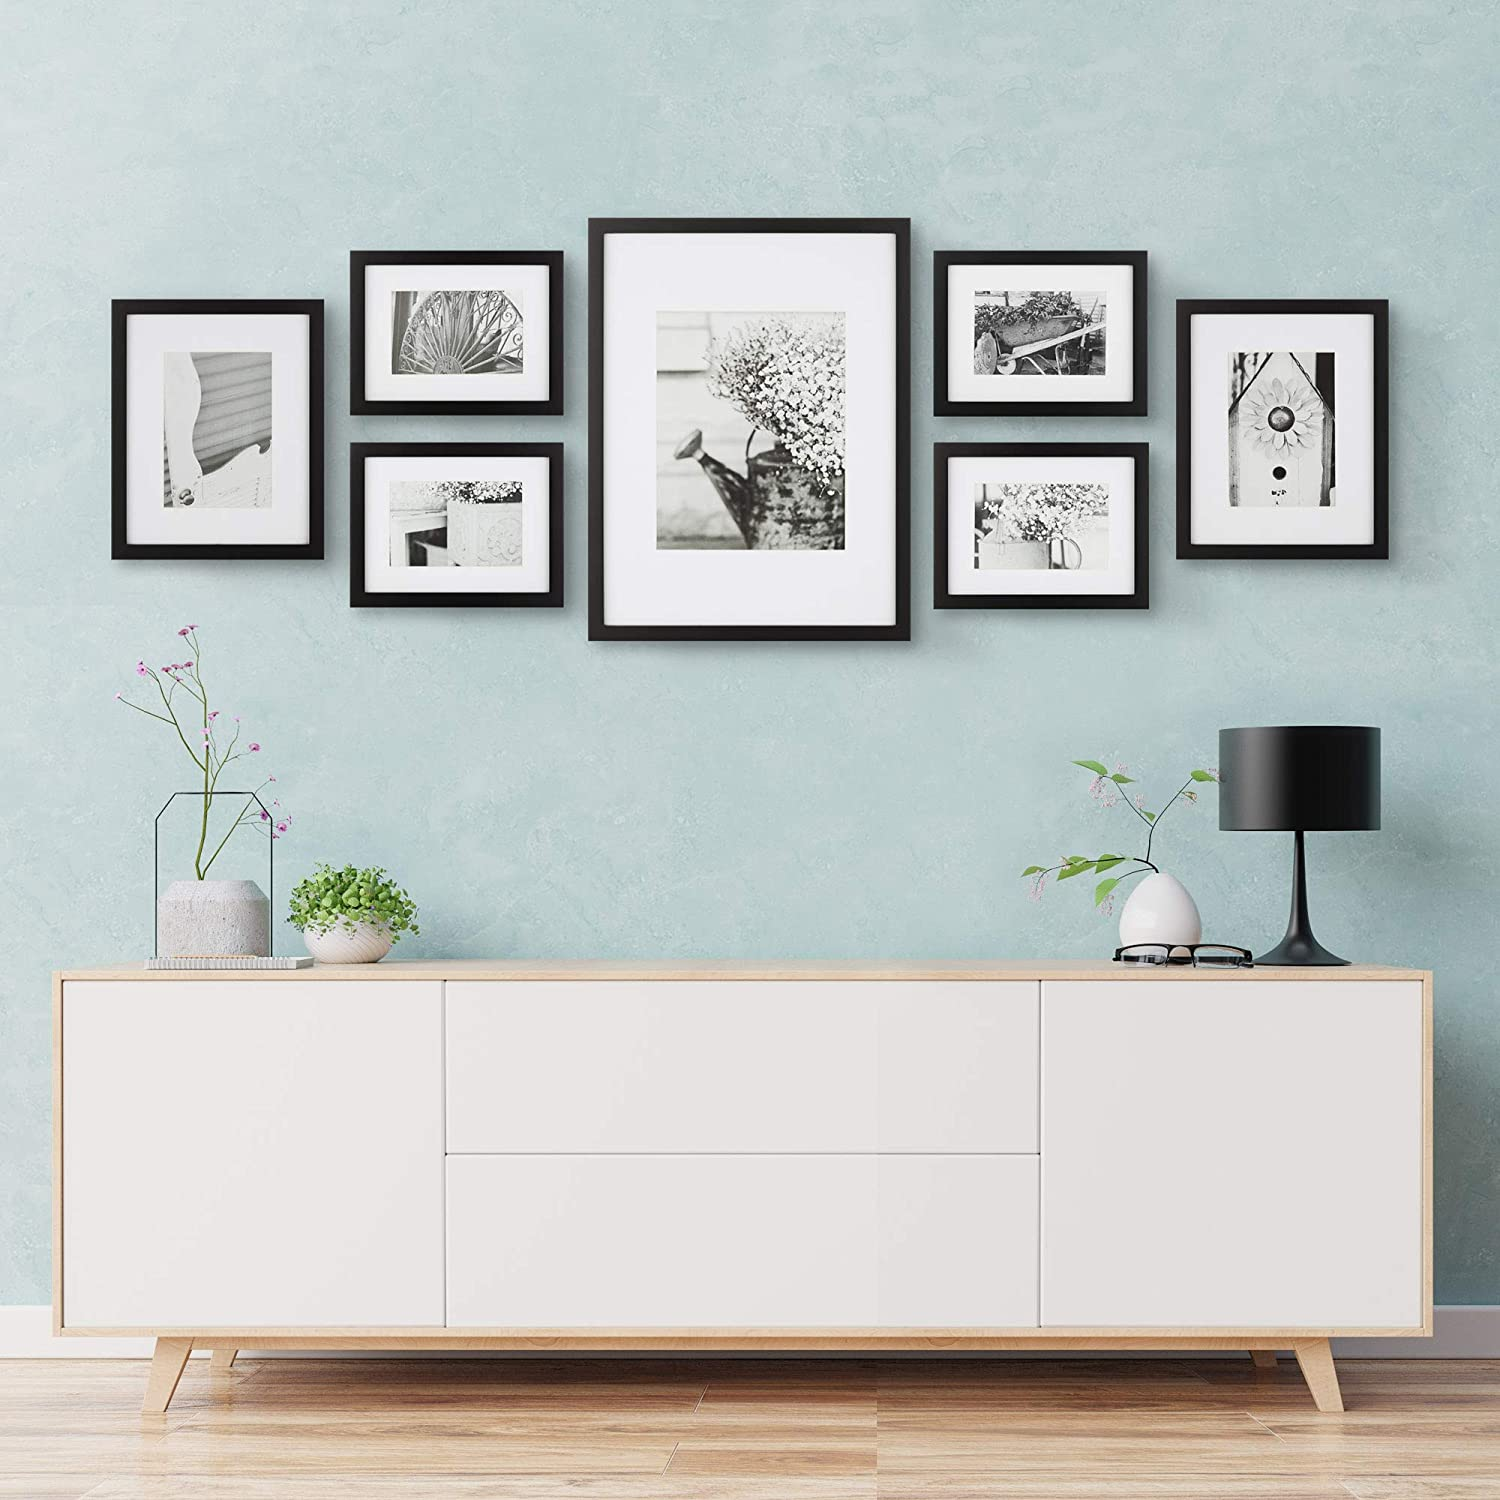 Gallery Wall Ideas and Layouts